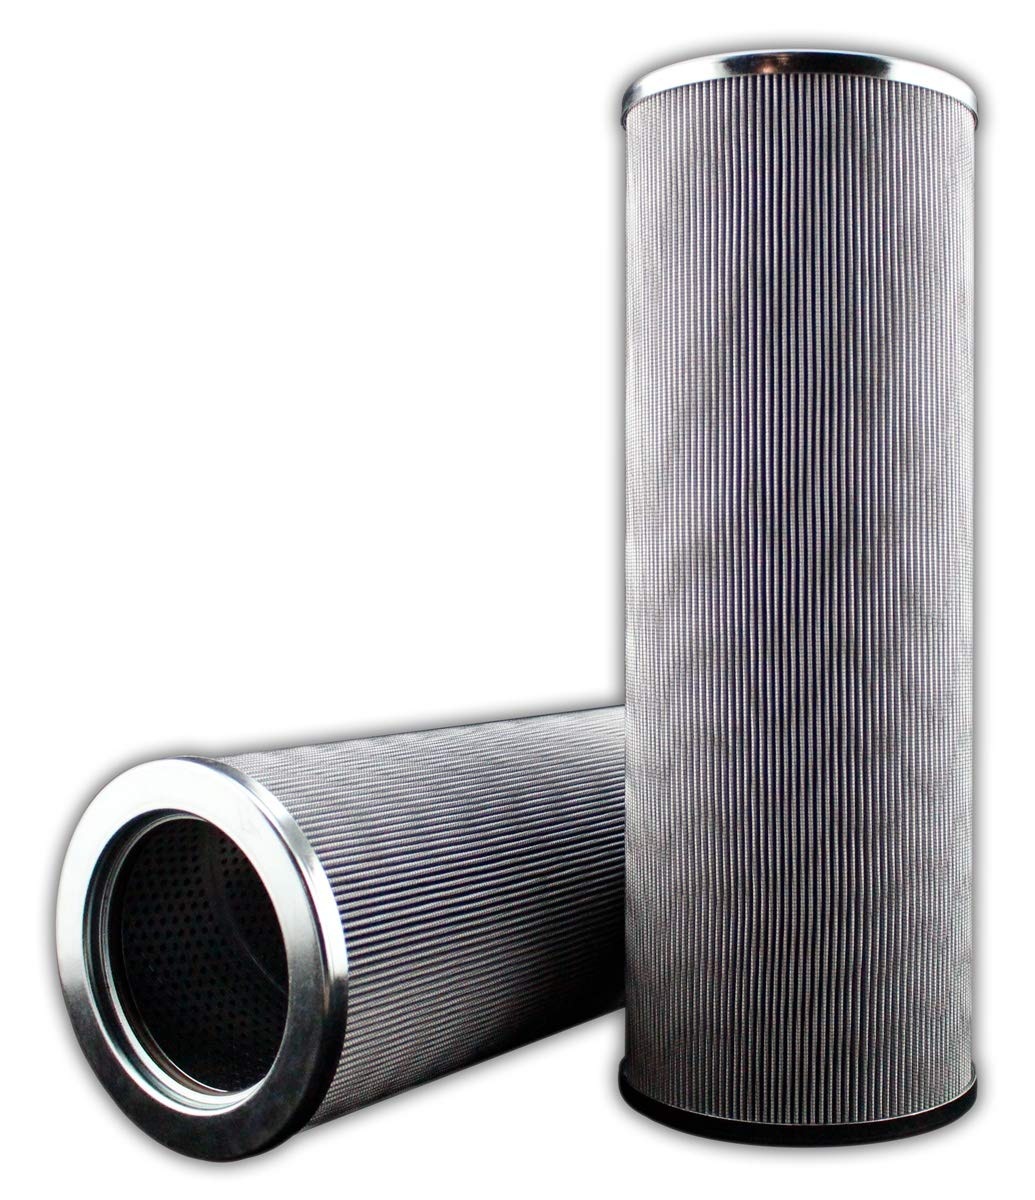 FLEETGUARD HF7404 Heavy Duty Replacement Hydraulic Filter Element from Big Filter